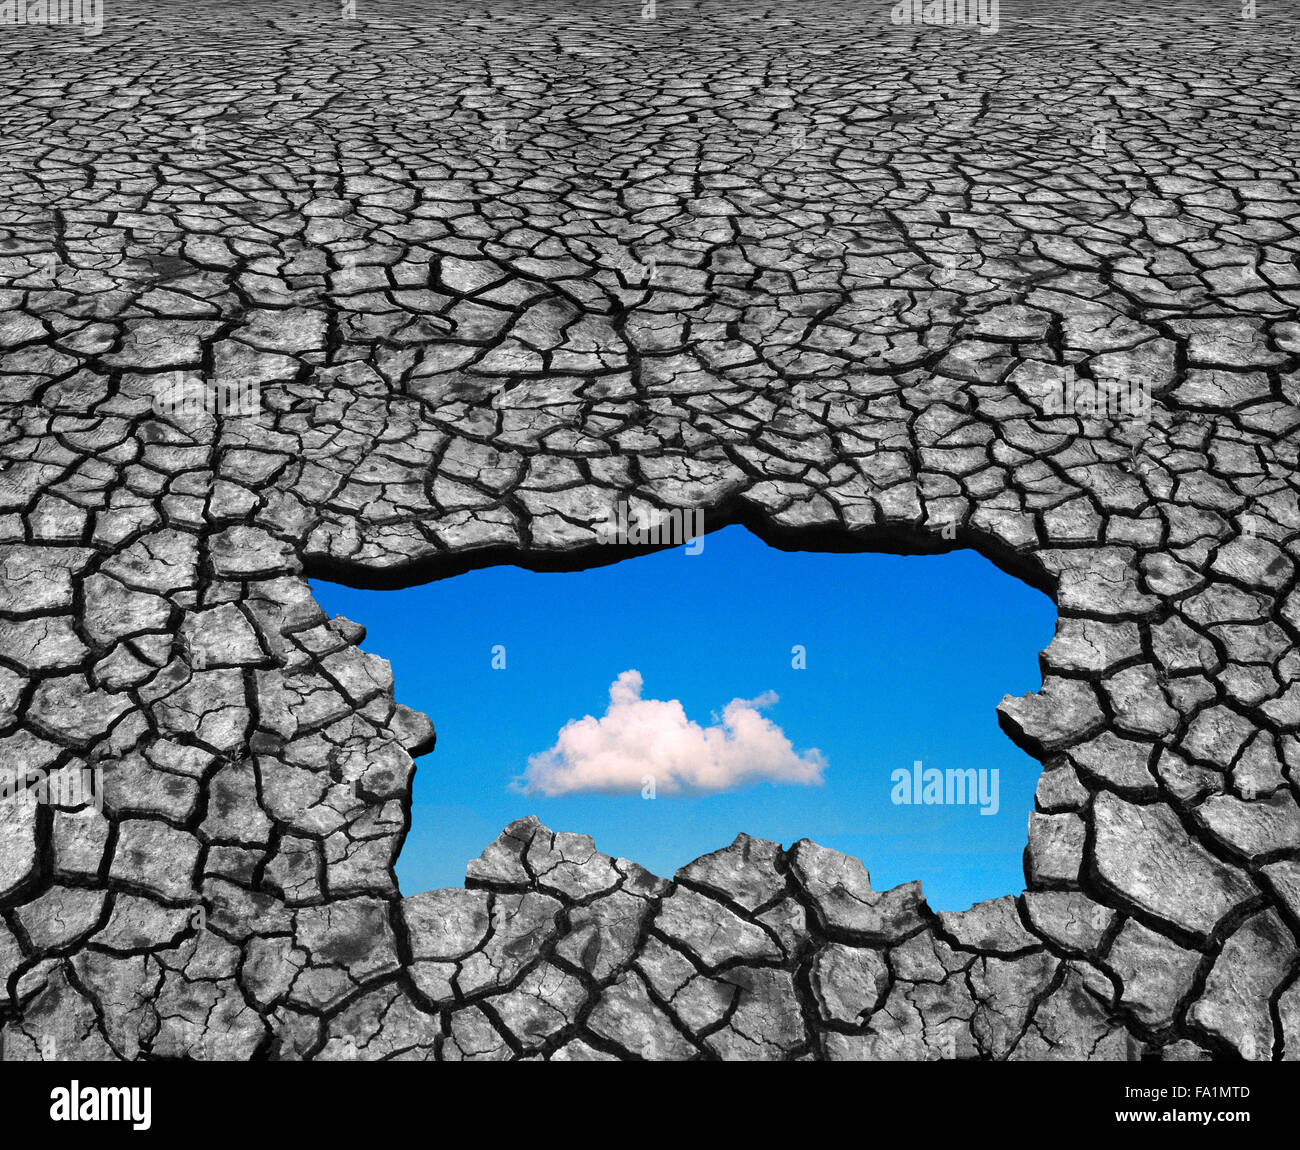 Climate change with hope and optimism showing through drought - Stock Image